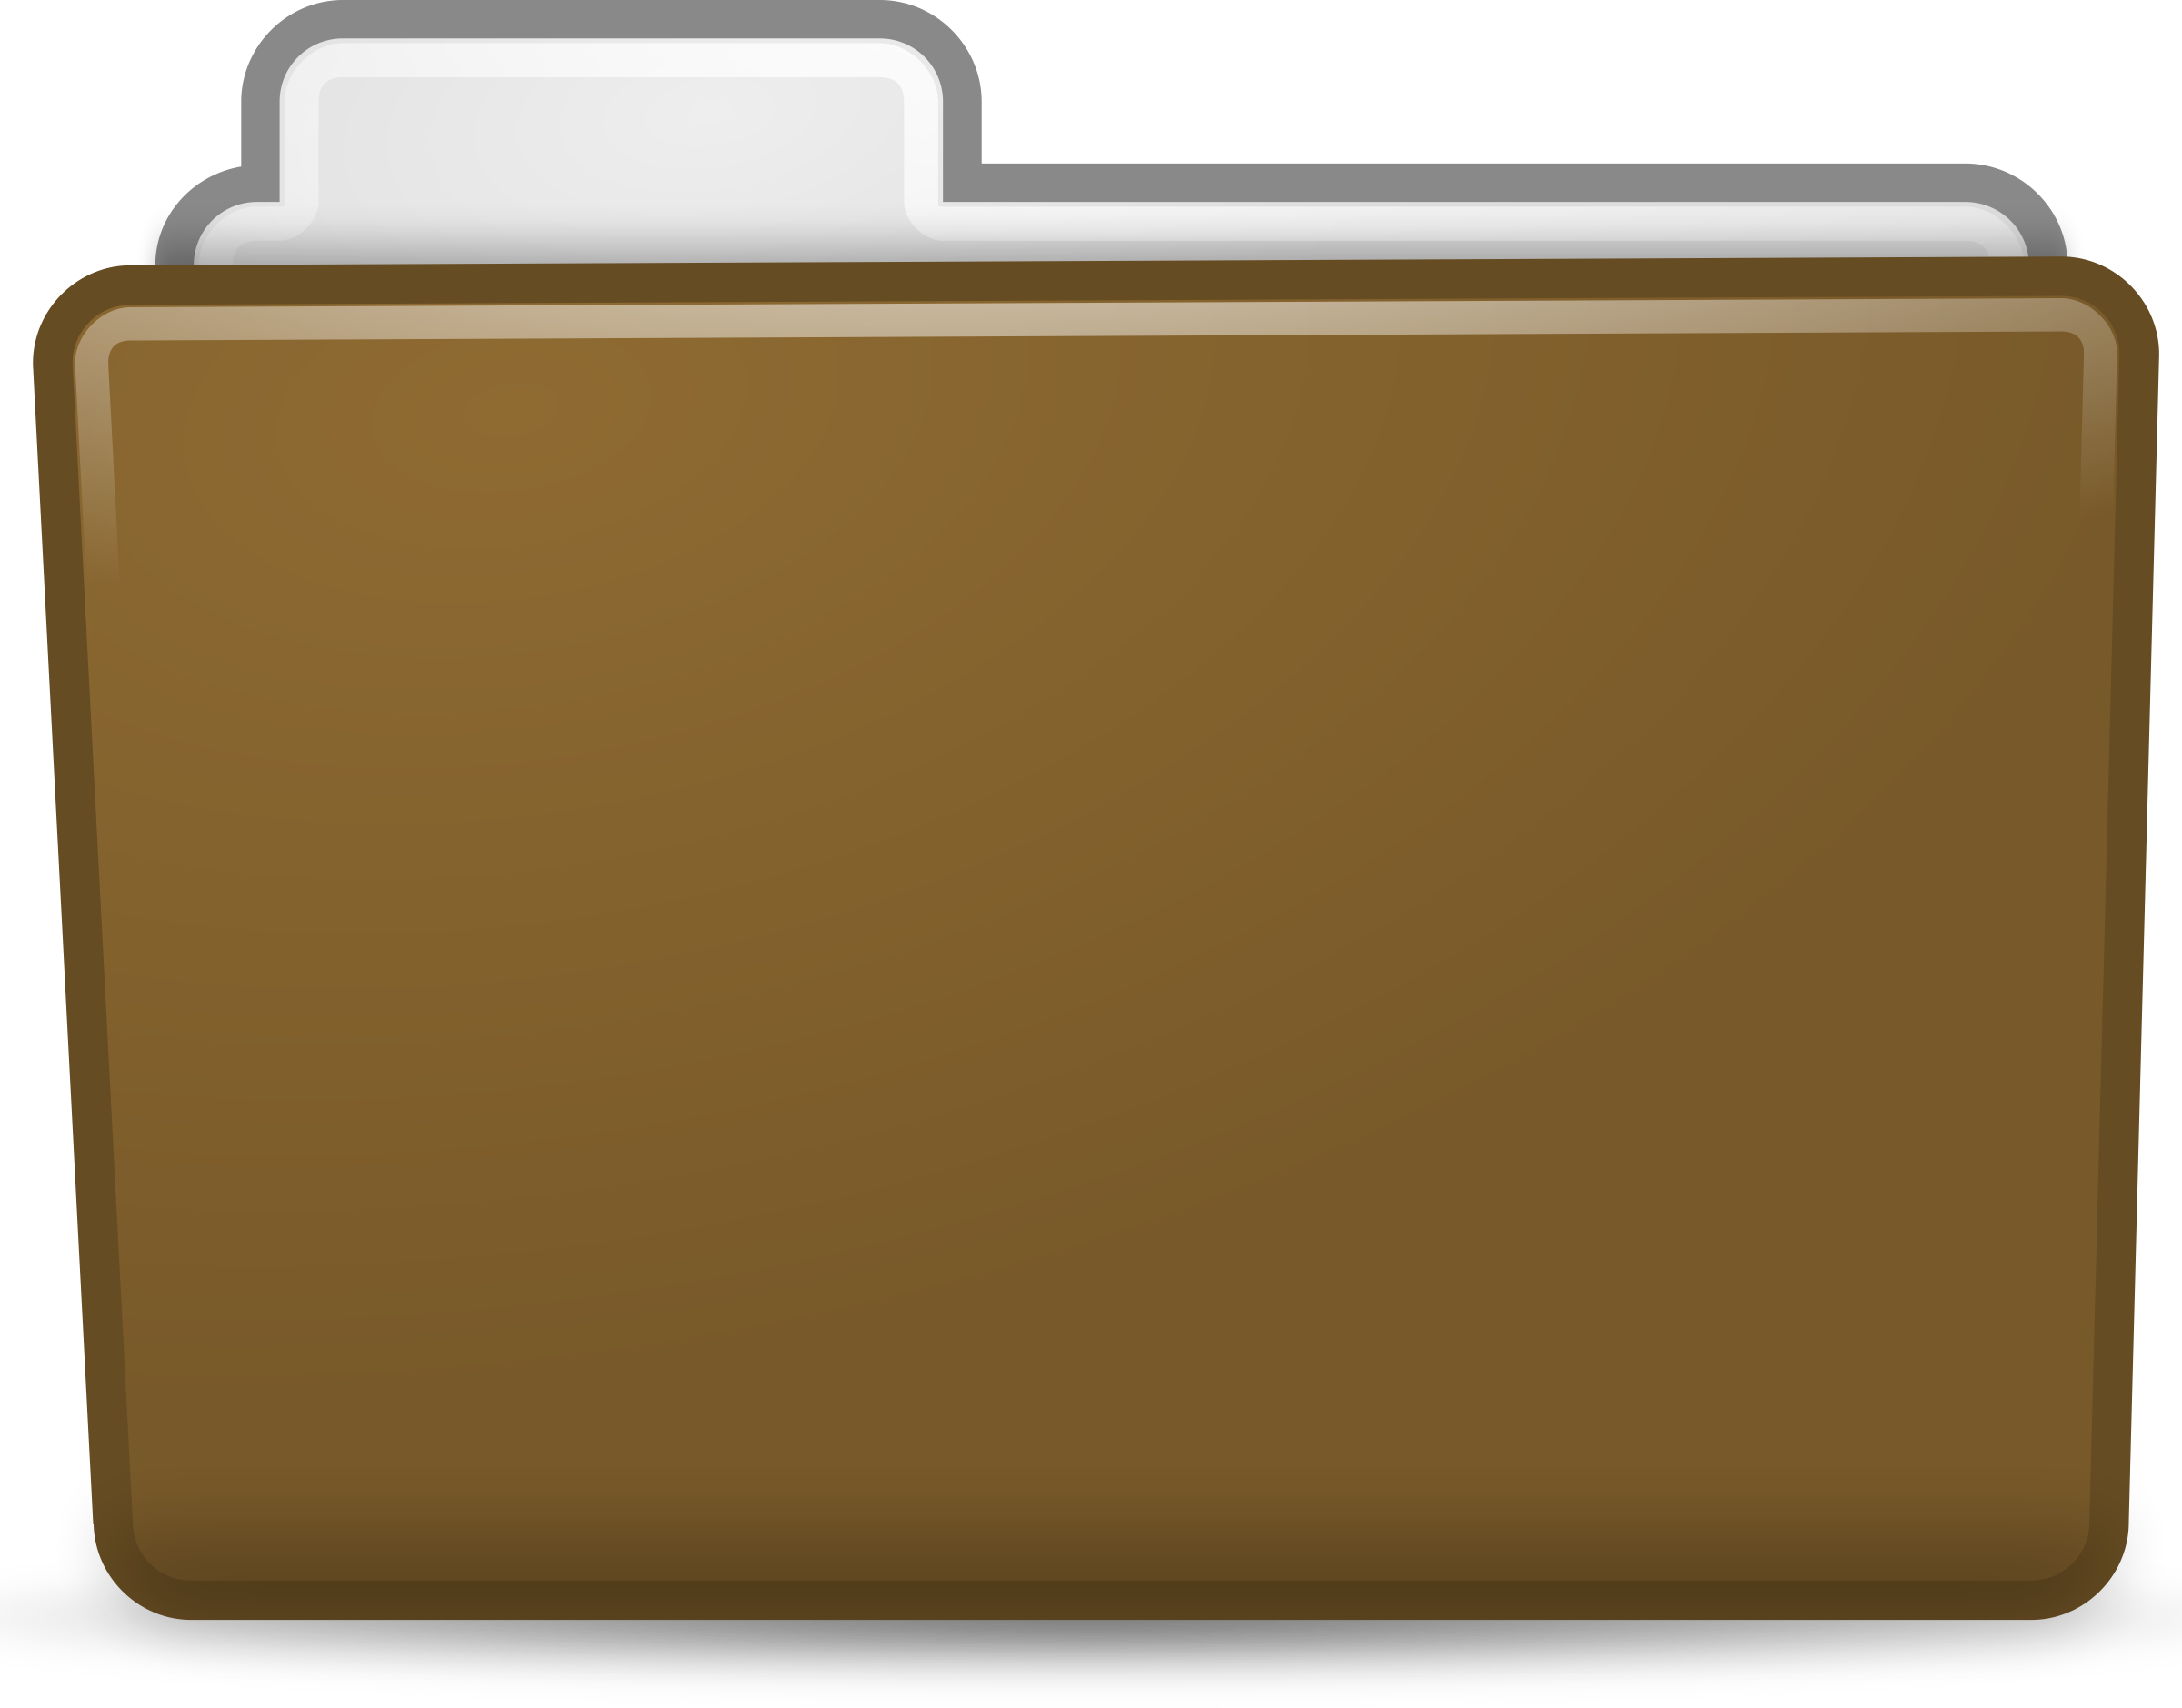 Folder clipart office material. Brown icon